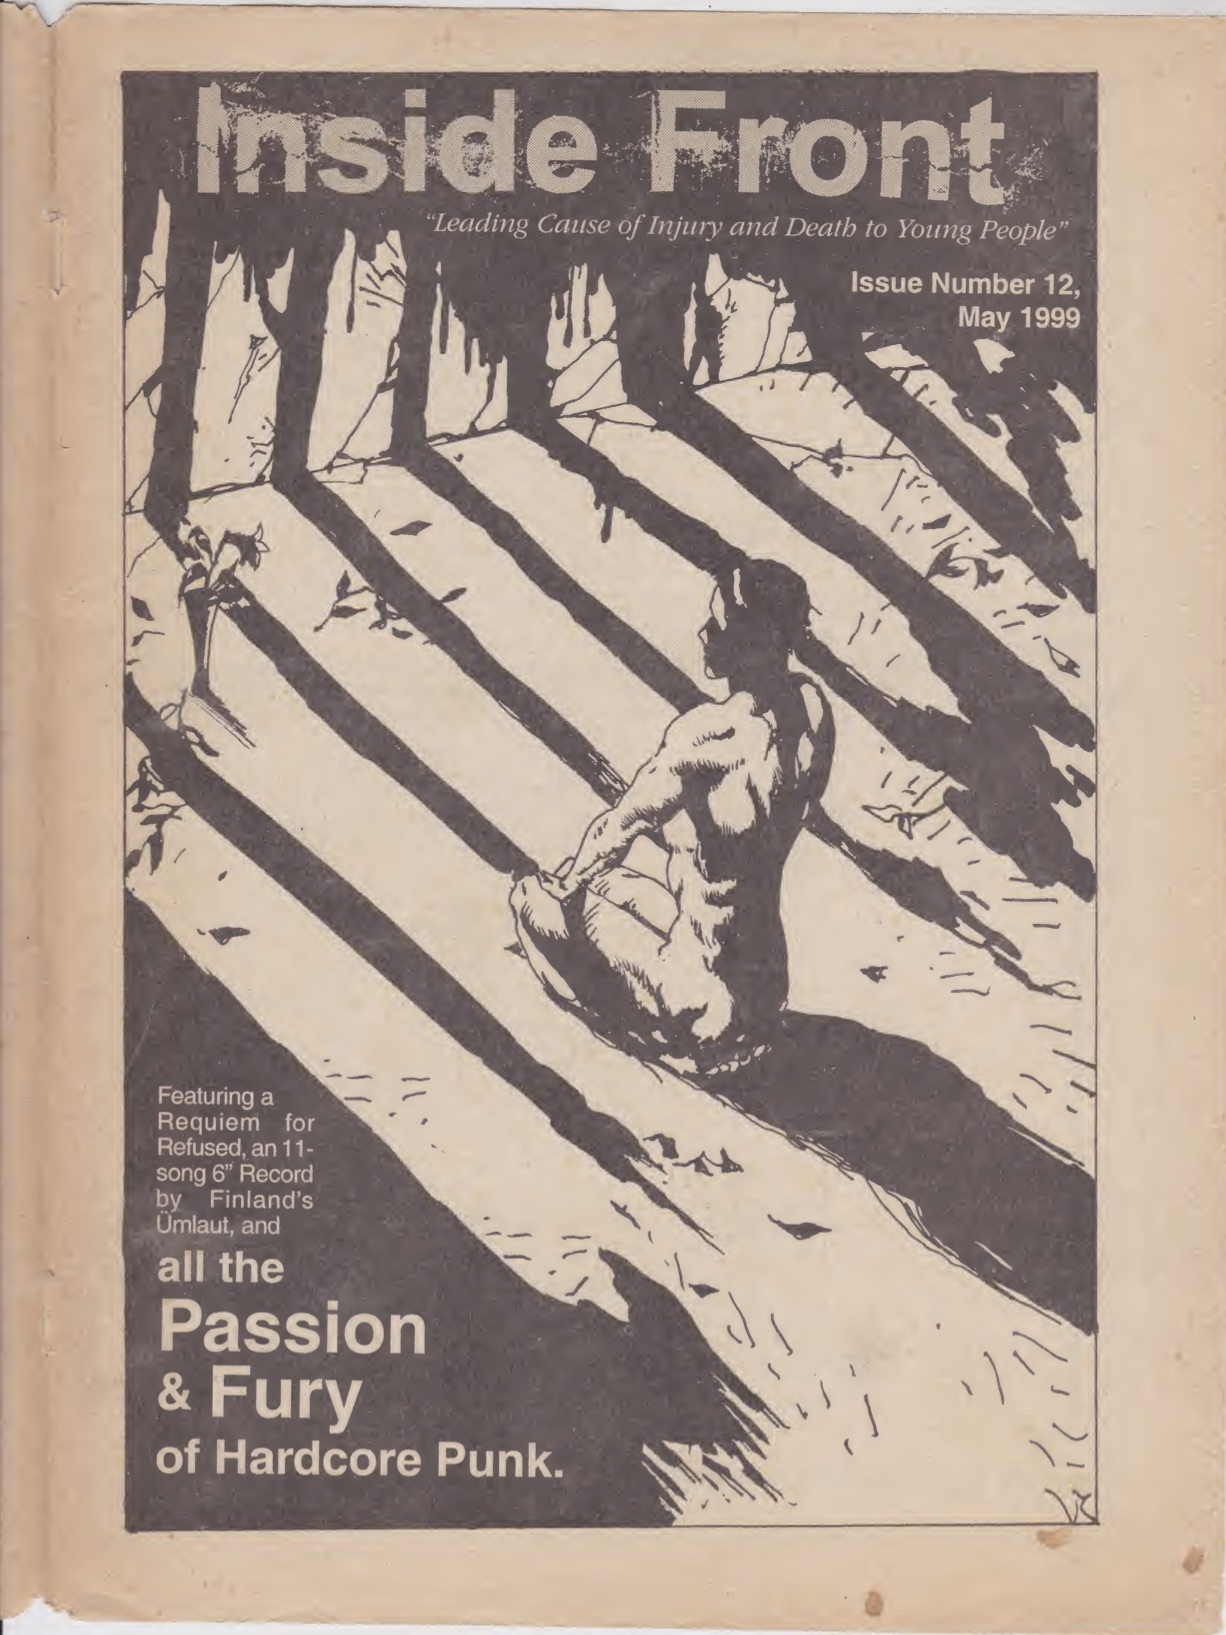 Photo of 'Inside Front #12' front cover